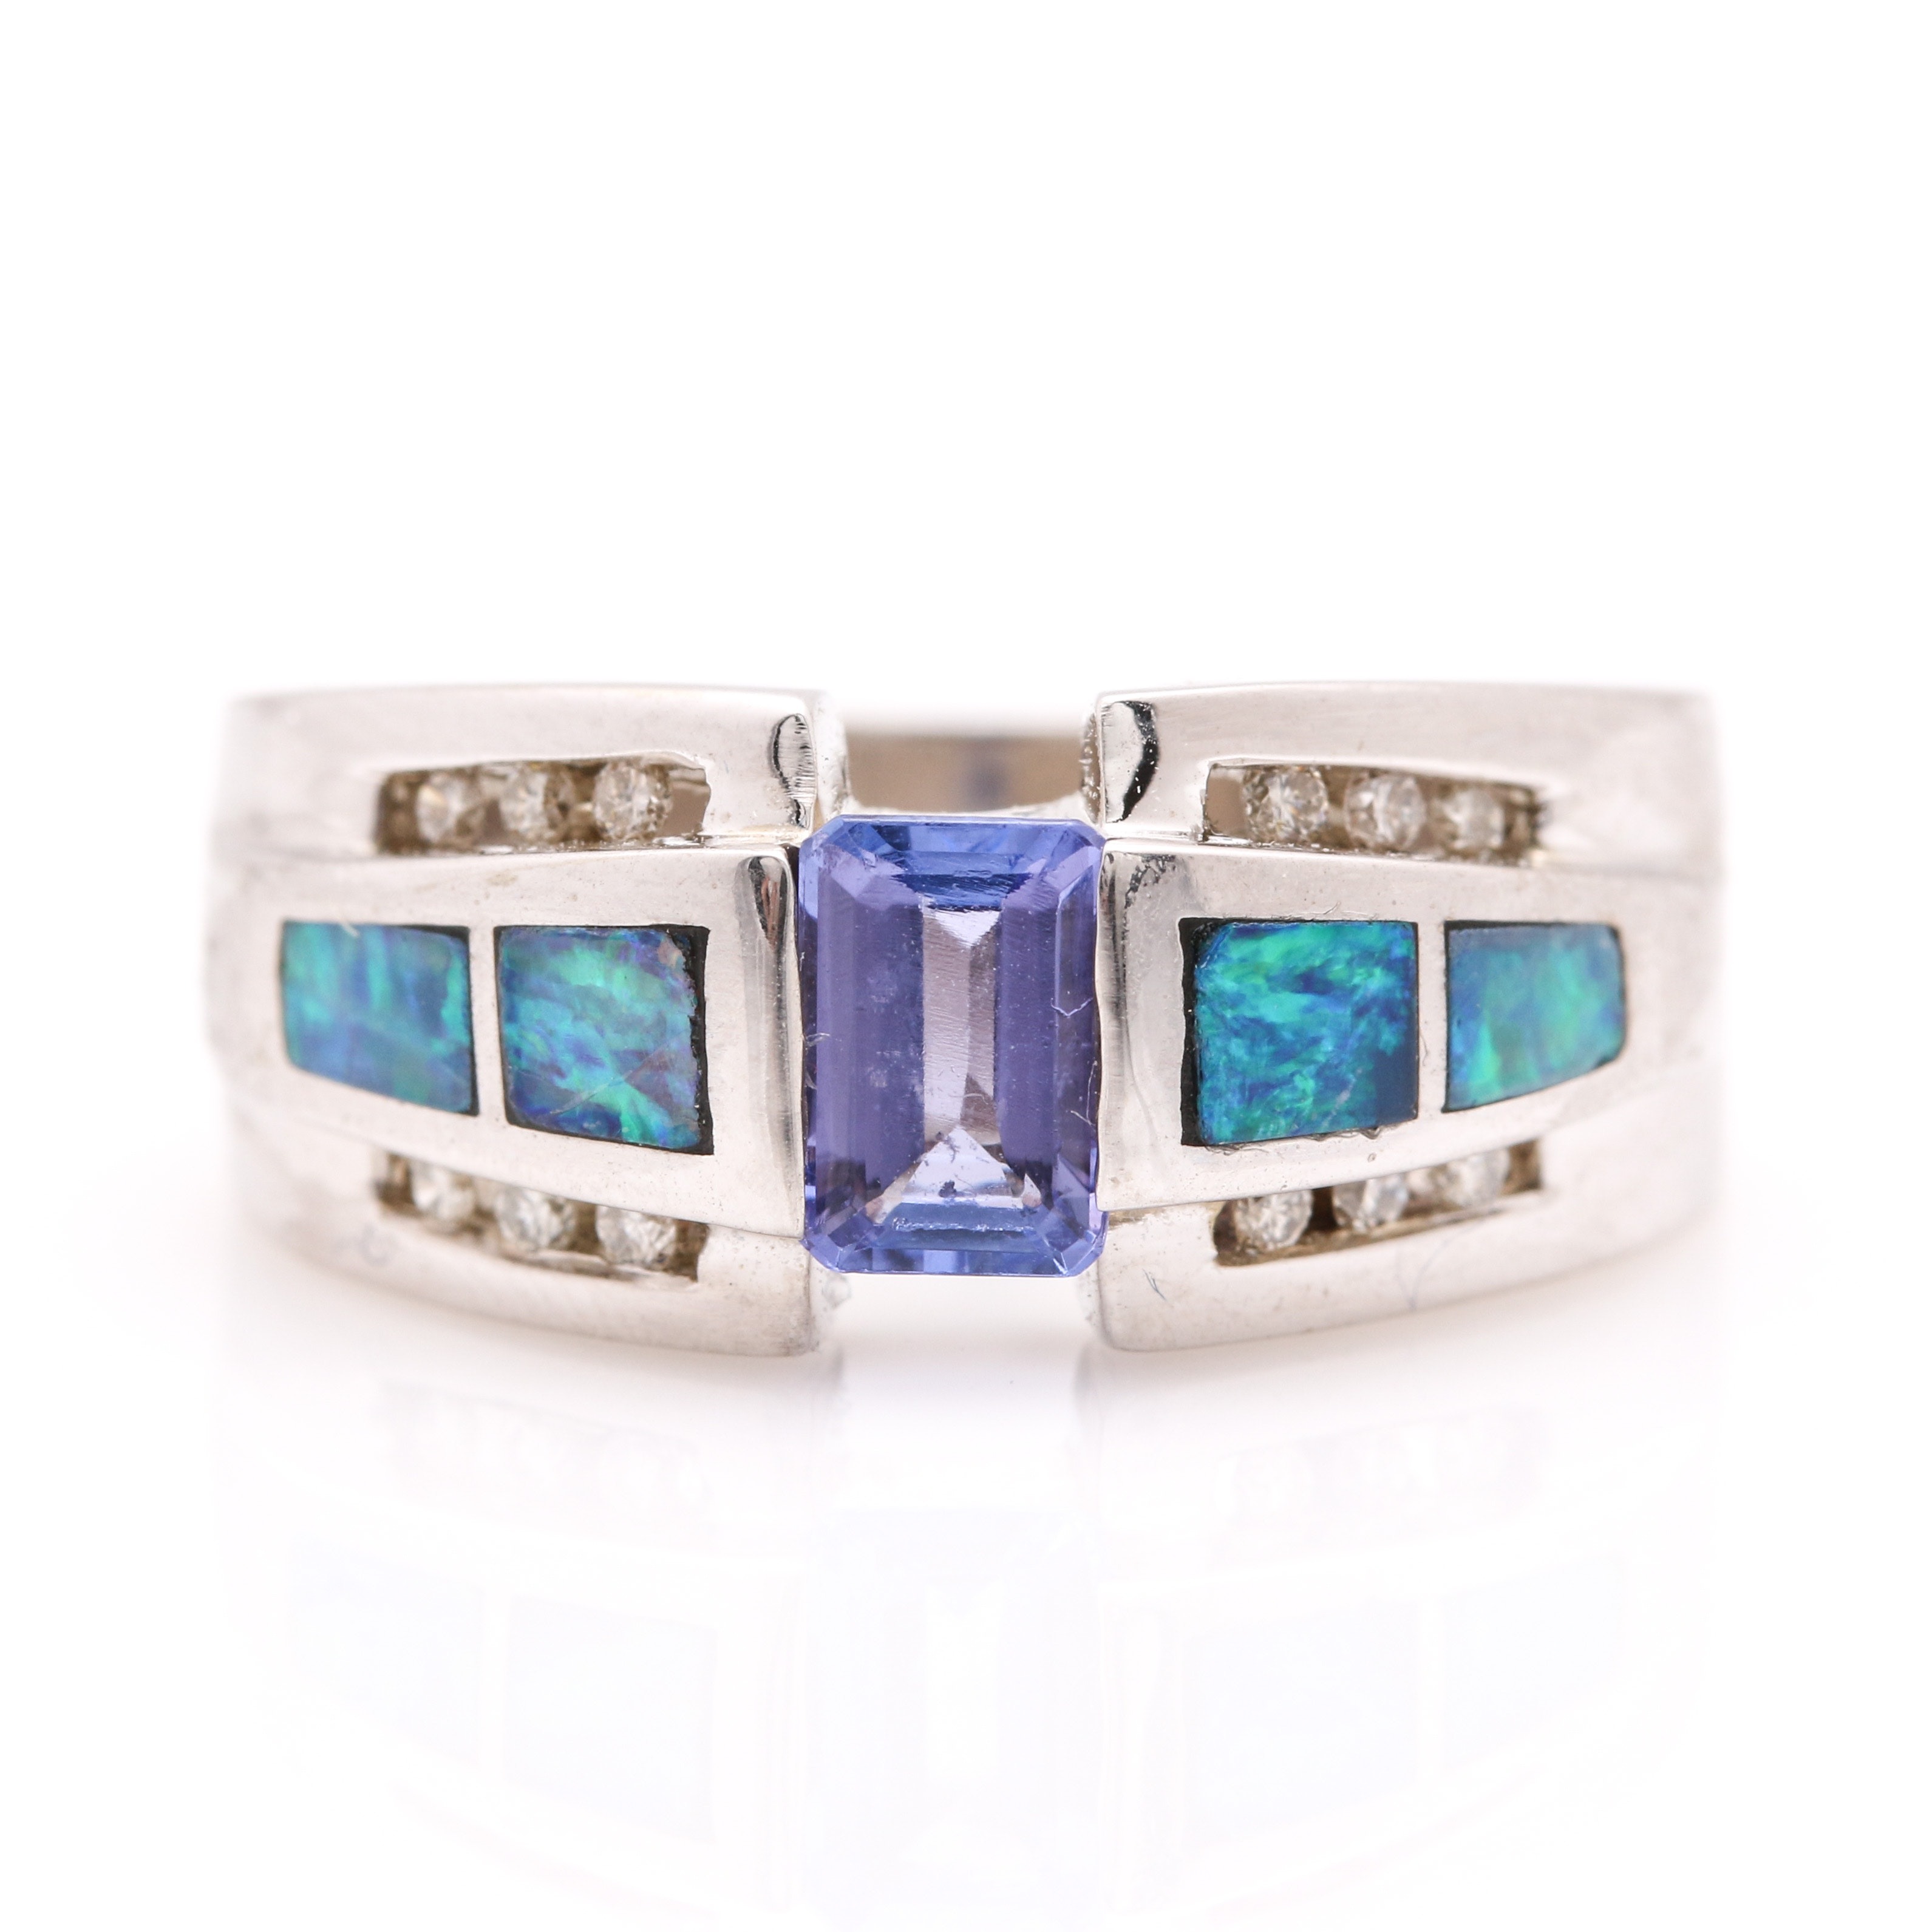 14K White Gold Tanzanite, Opal Doublet, and Diamond Ring